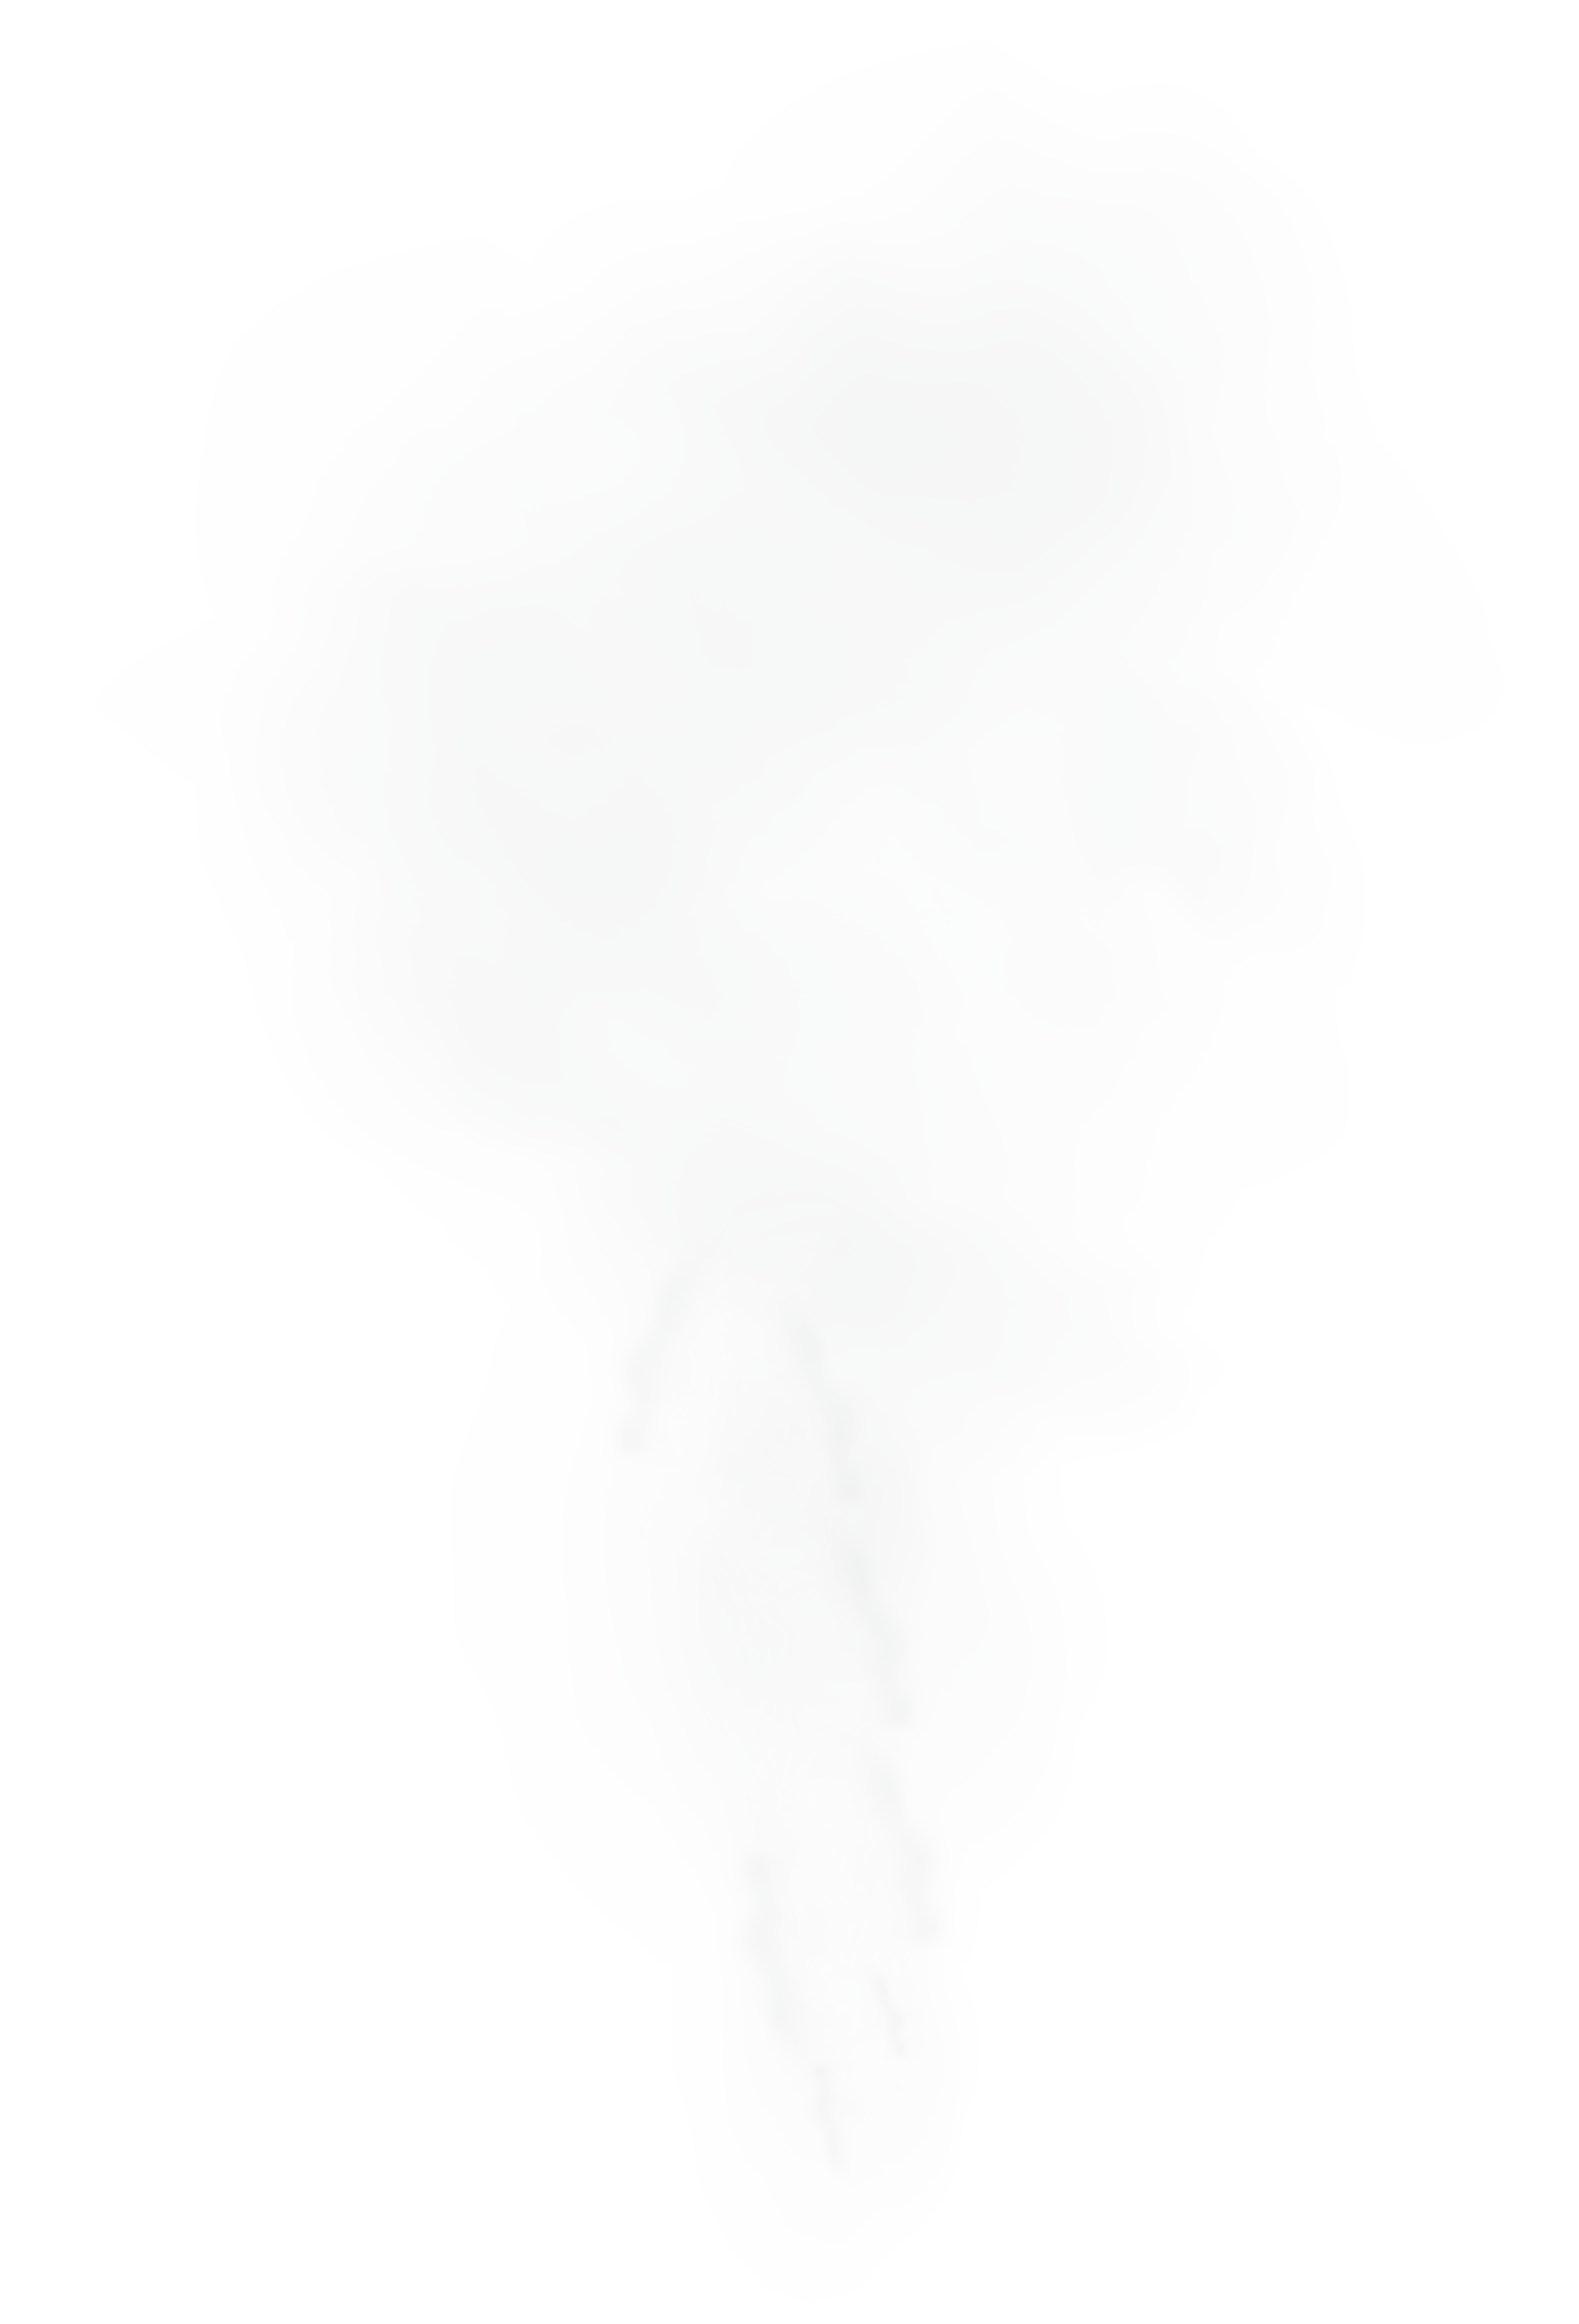 Transparent clip art gallery. Smoke alpha png